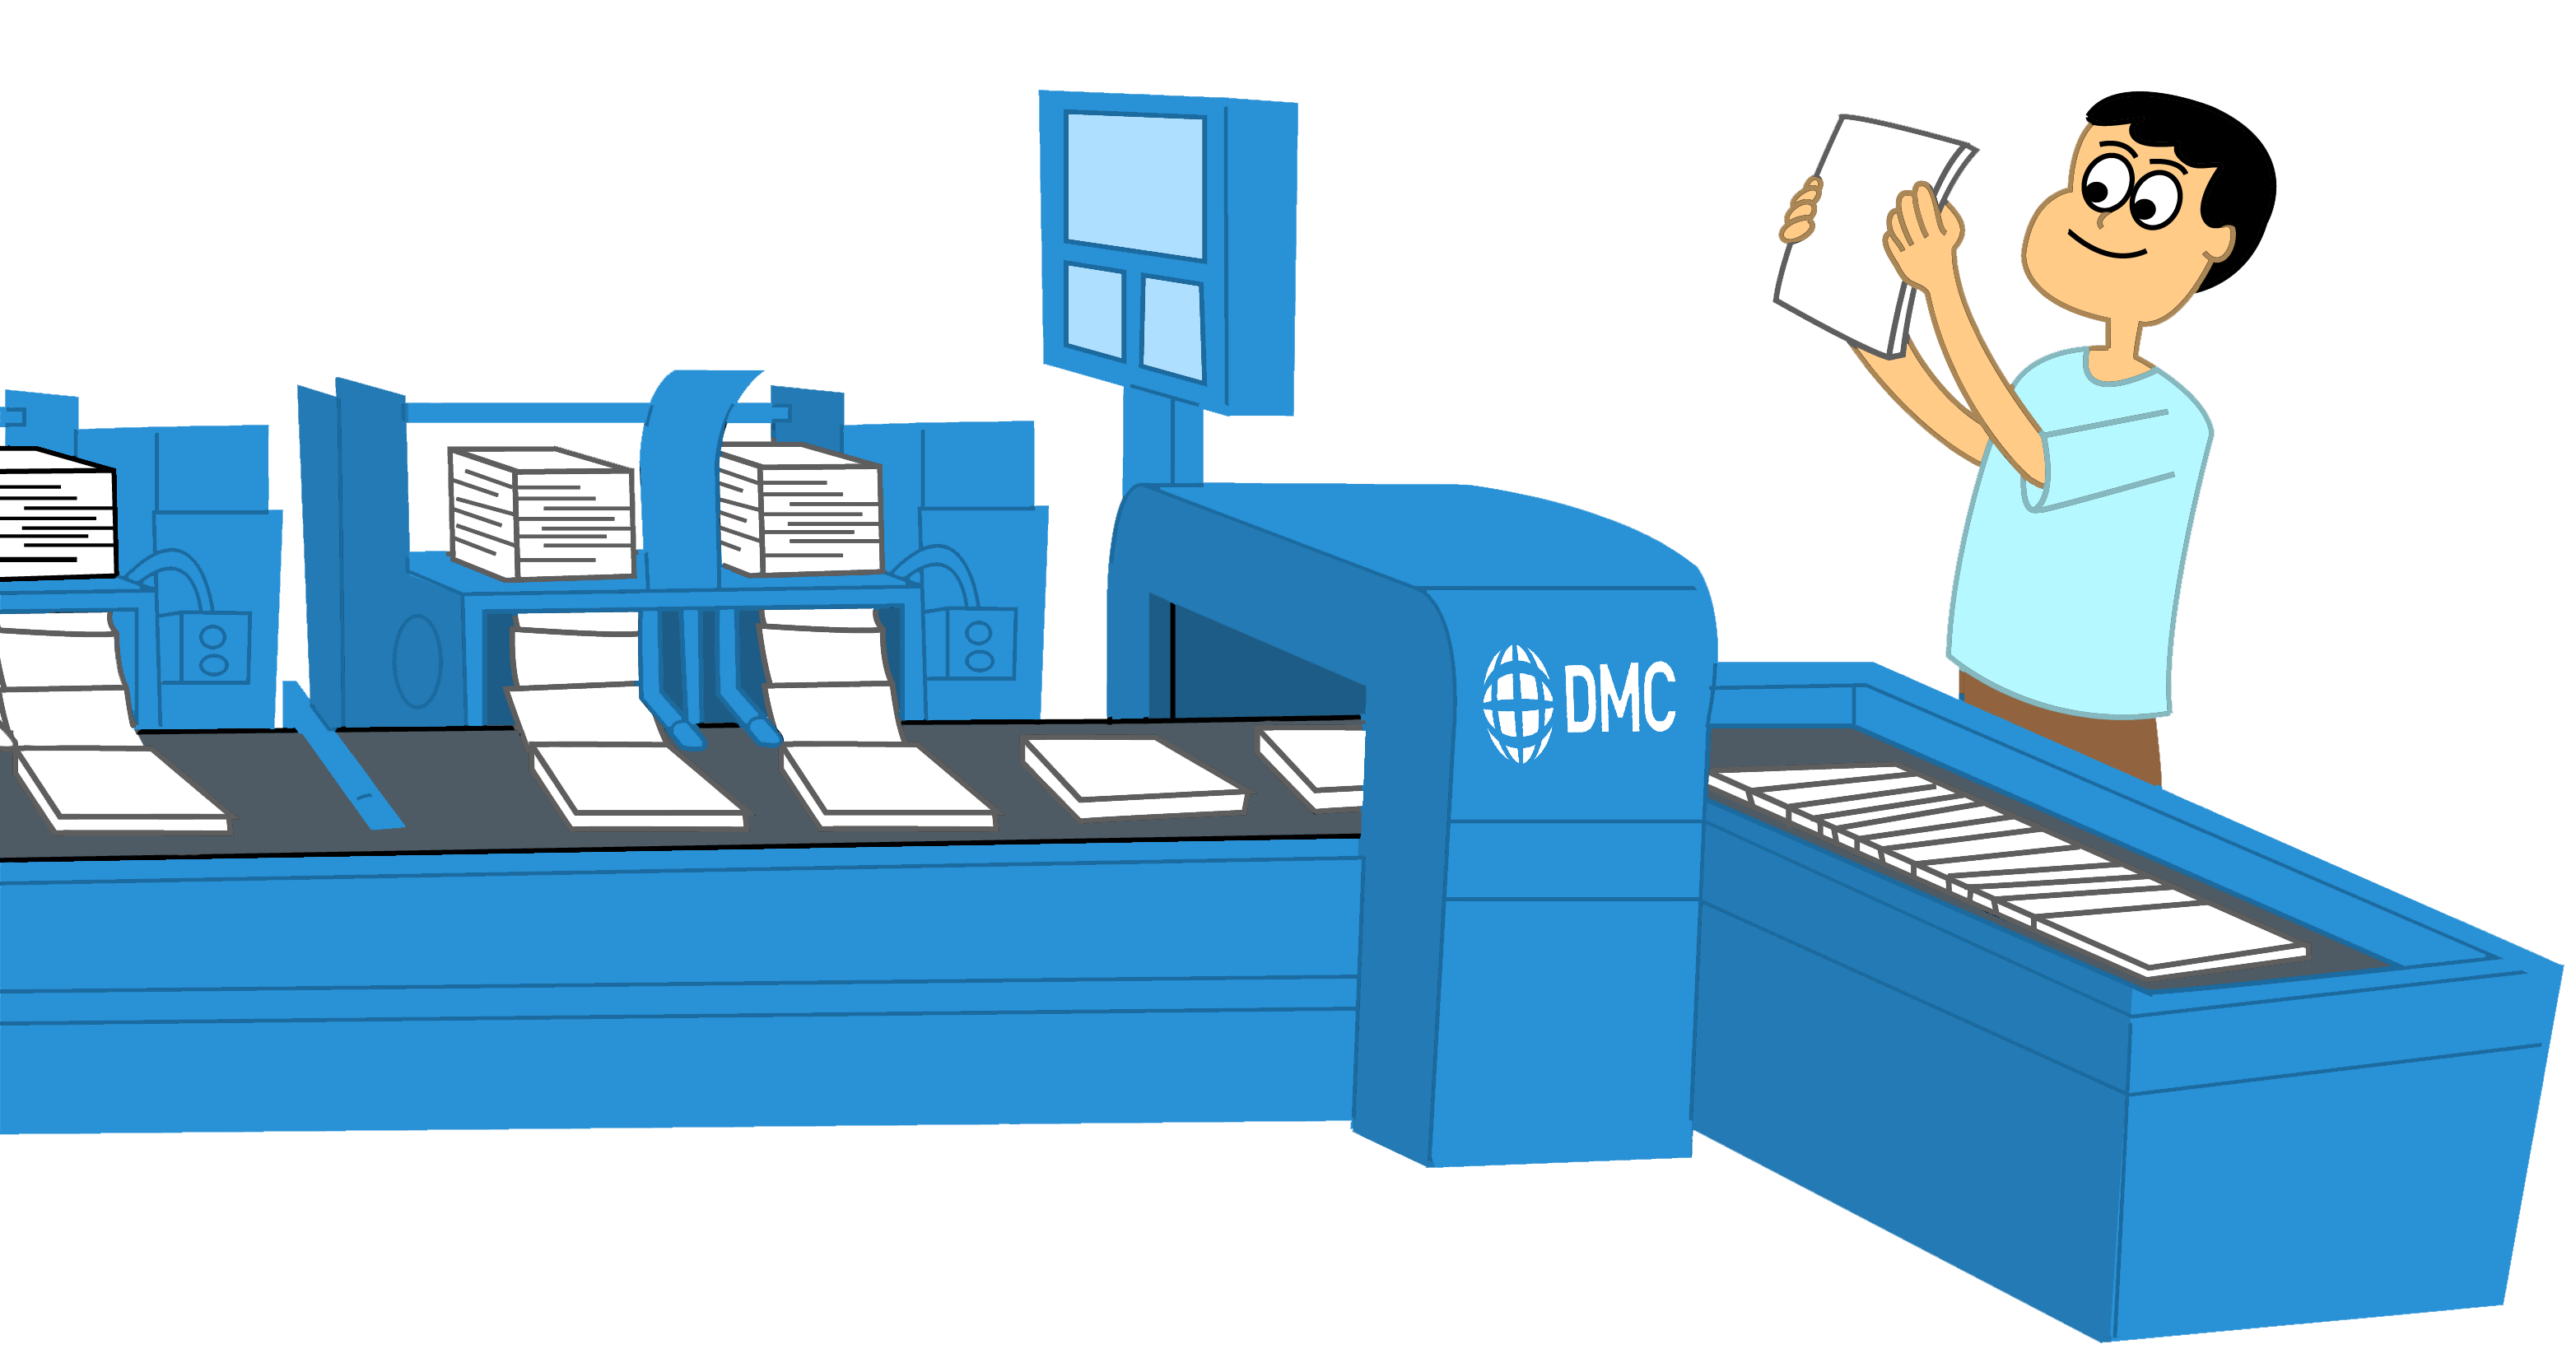 Document clipart mail. Direct services centredirect centre